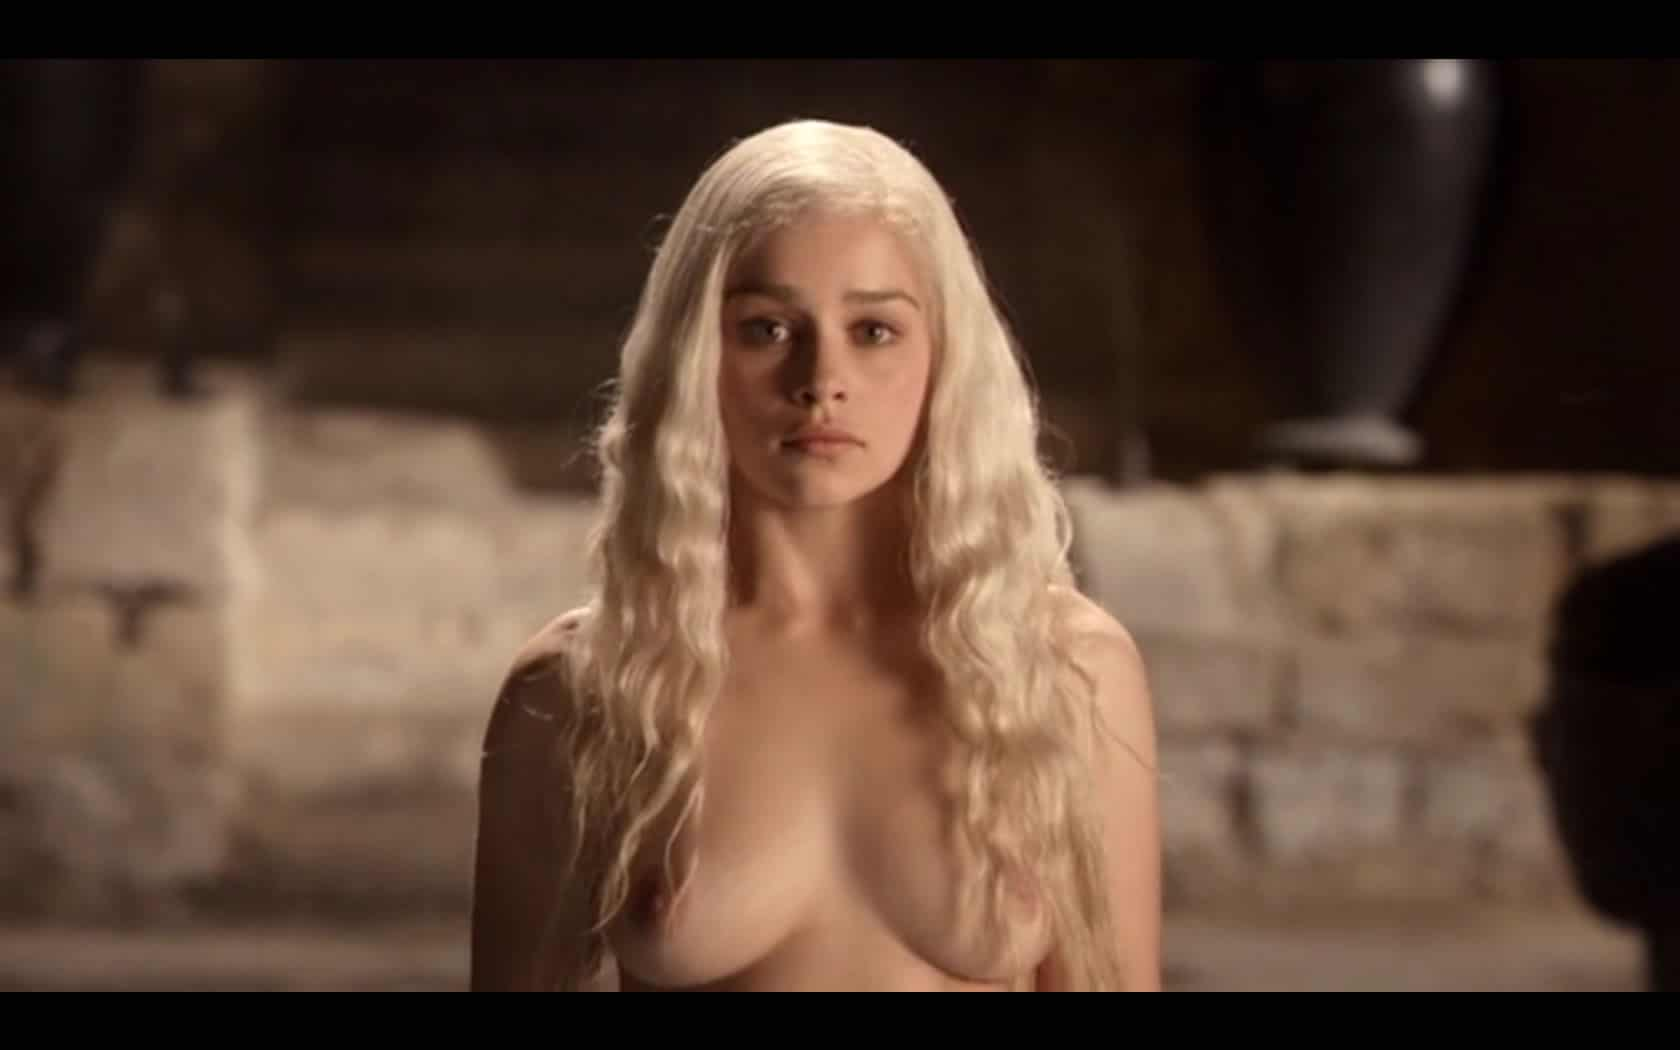 Emilia Clarke blond hair covering nipples